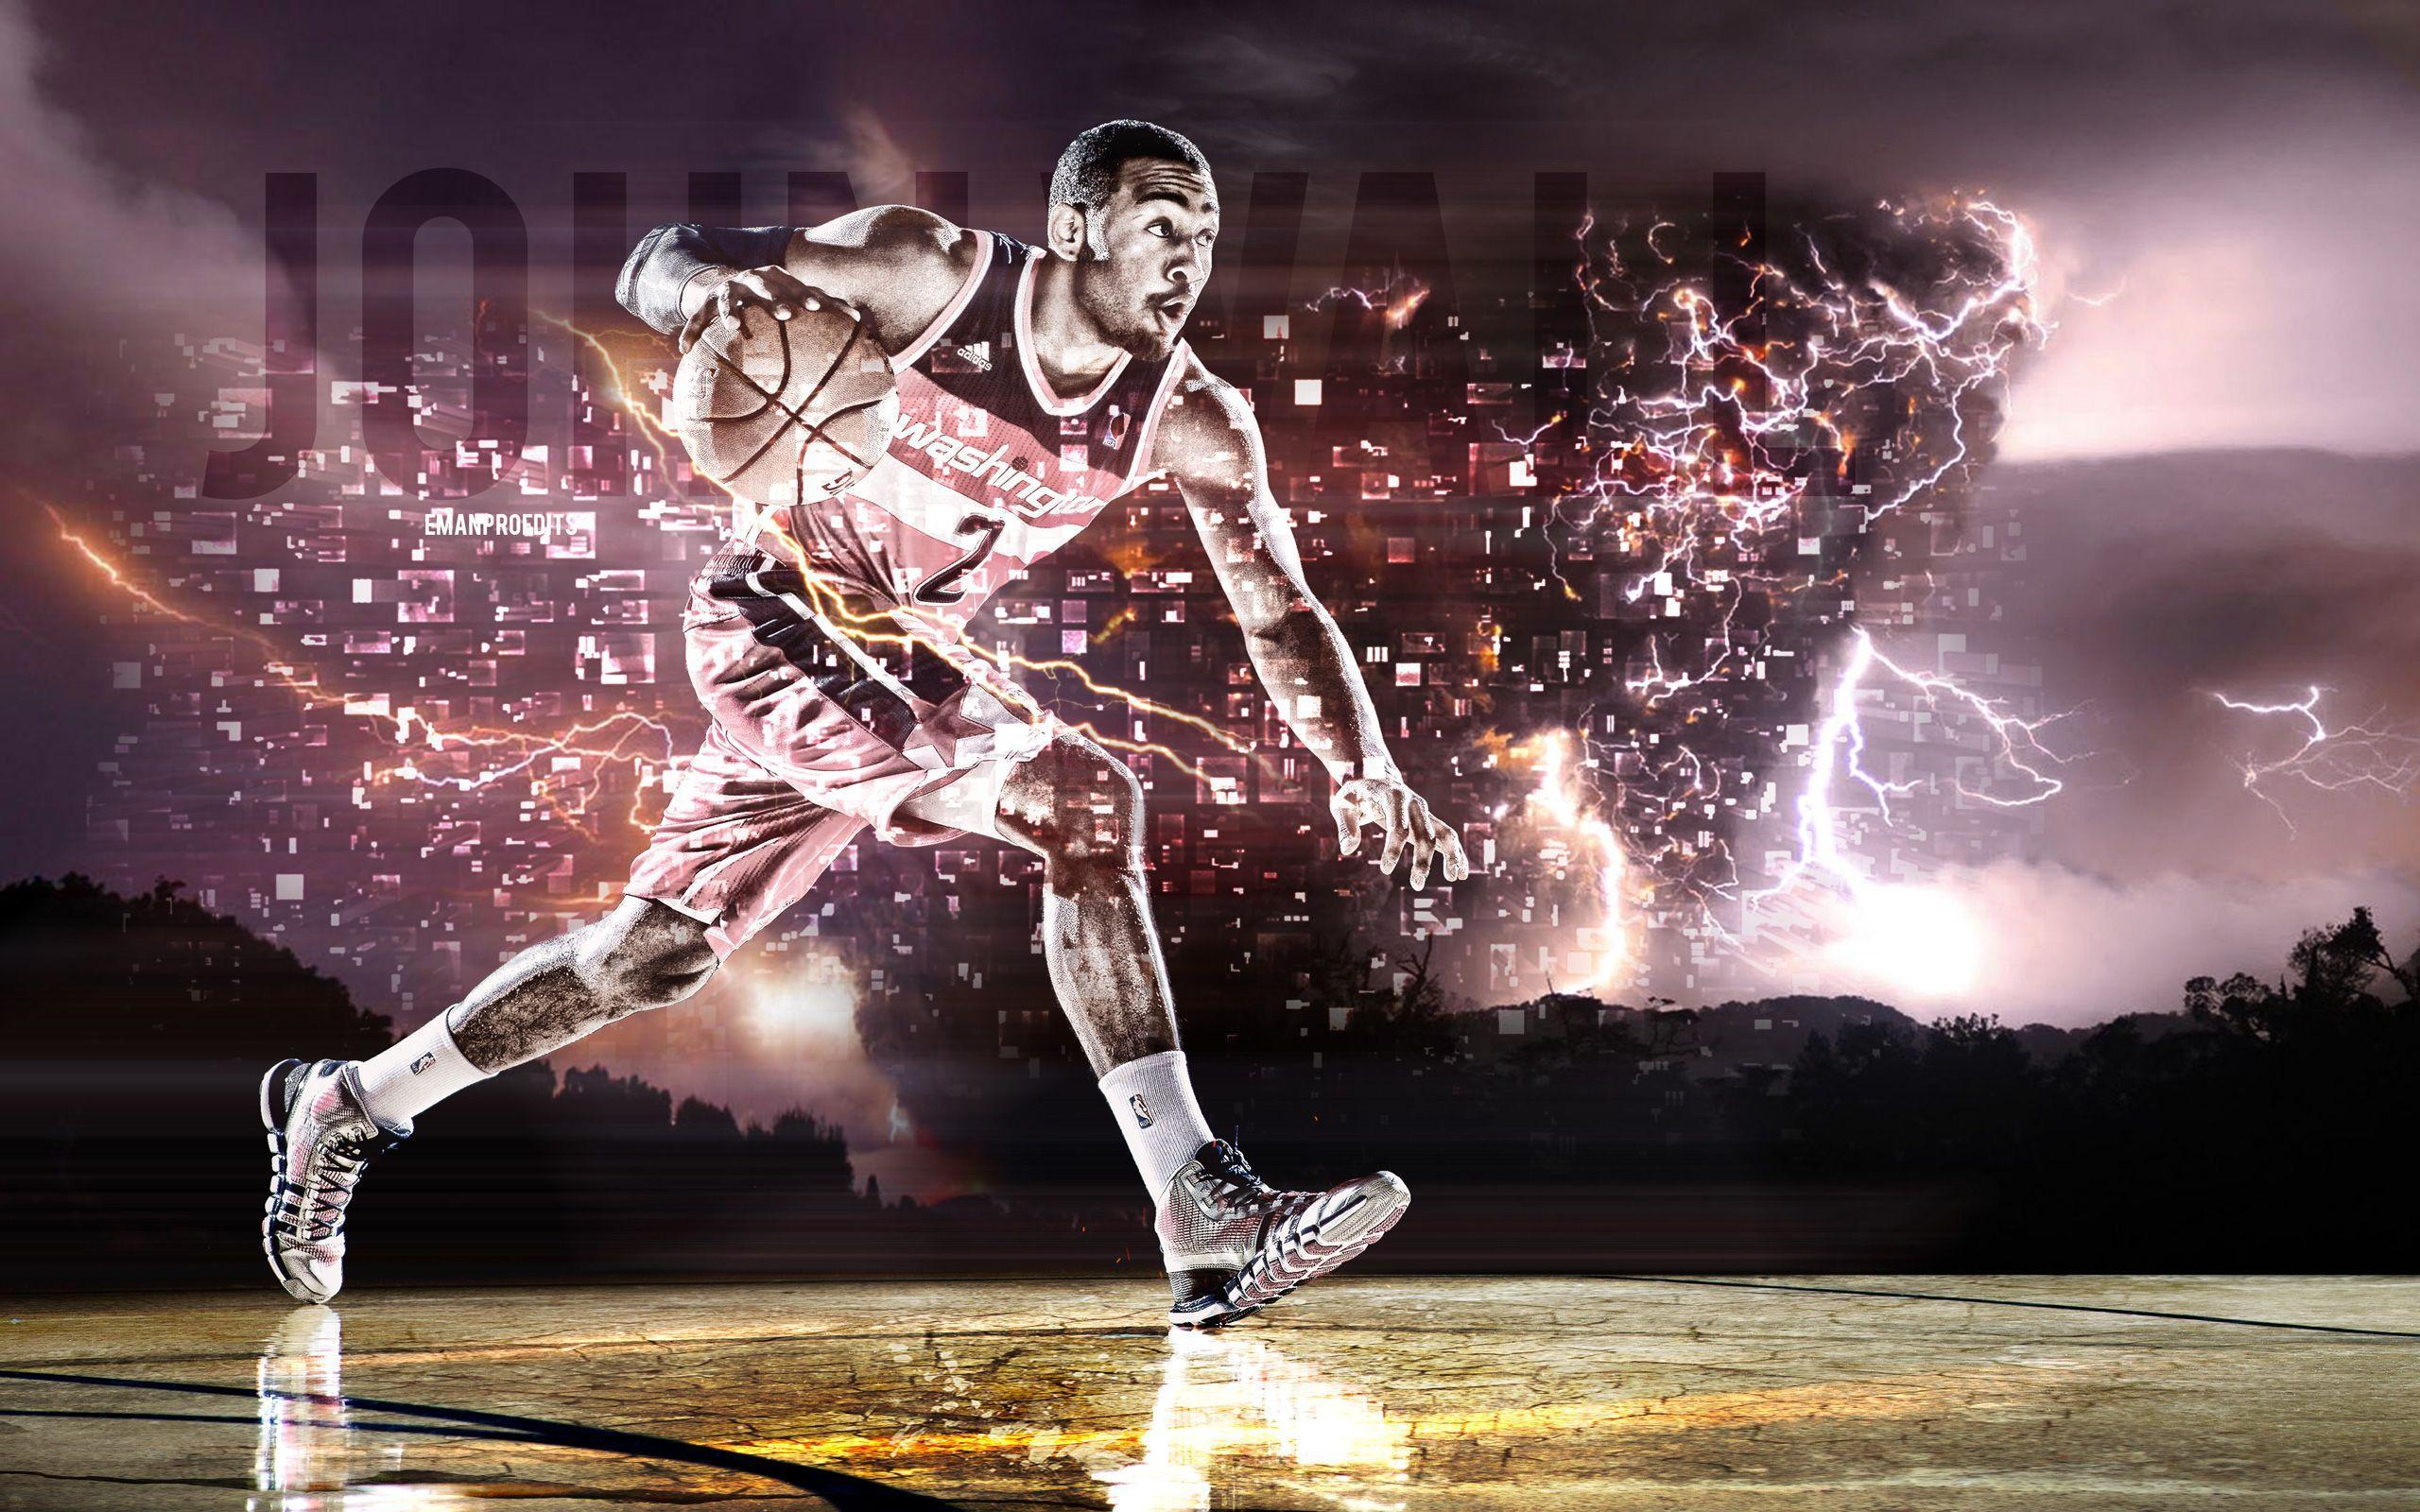 John Wall Wizards 2014 Wallpaper | Basketball Wallpapers at ...